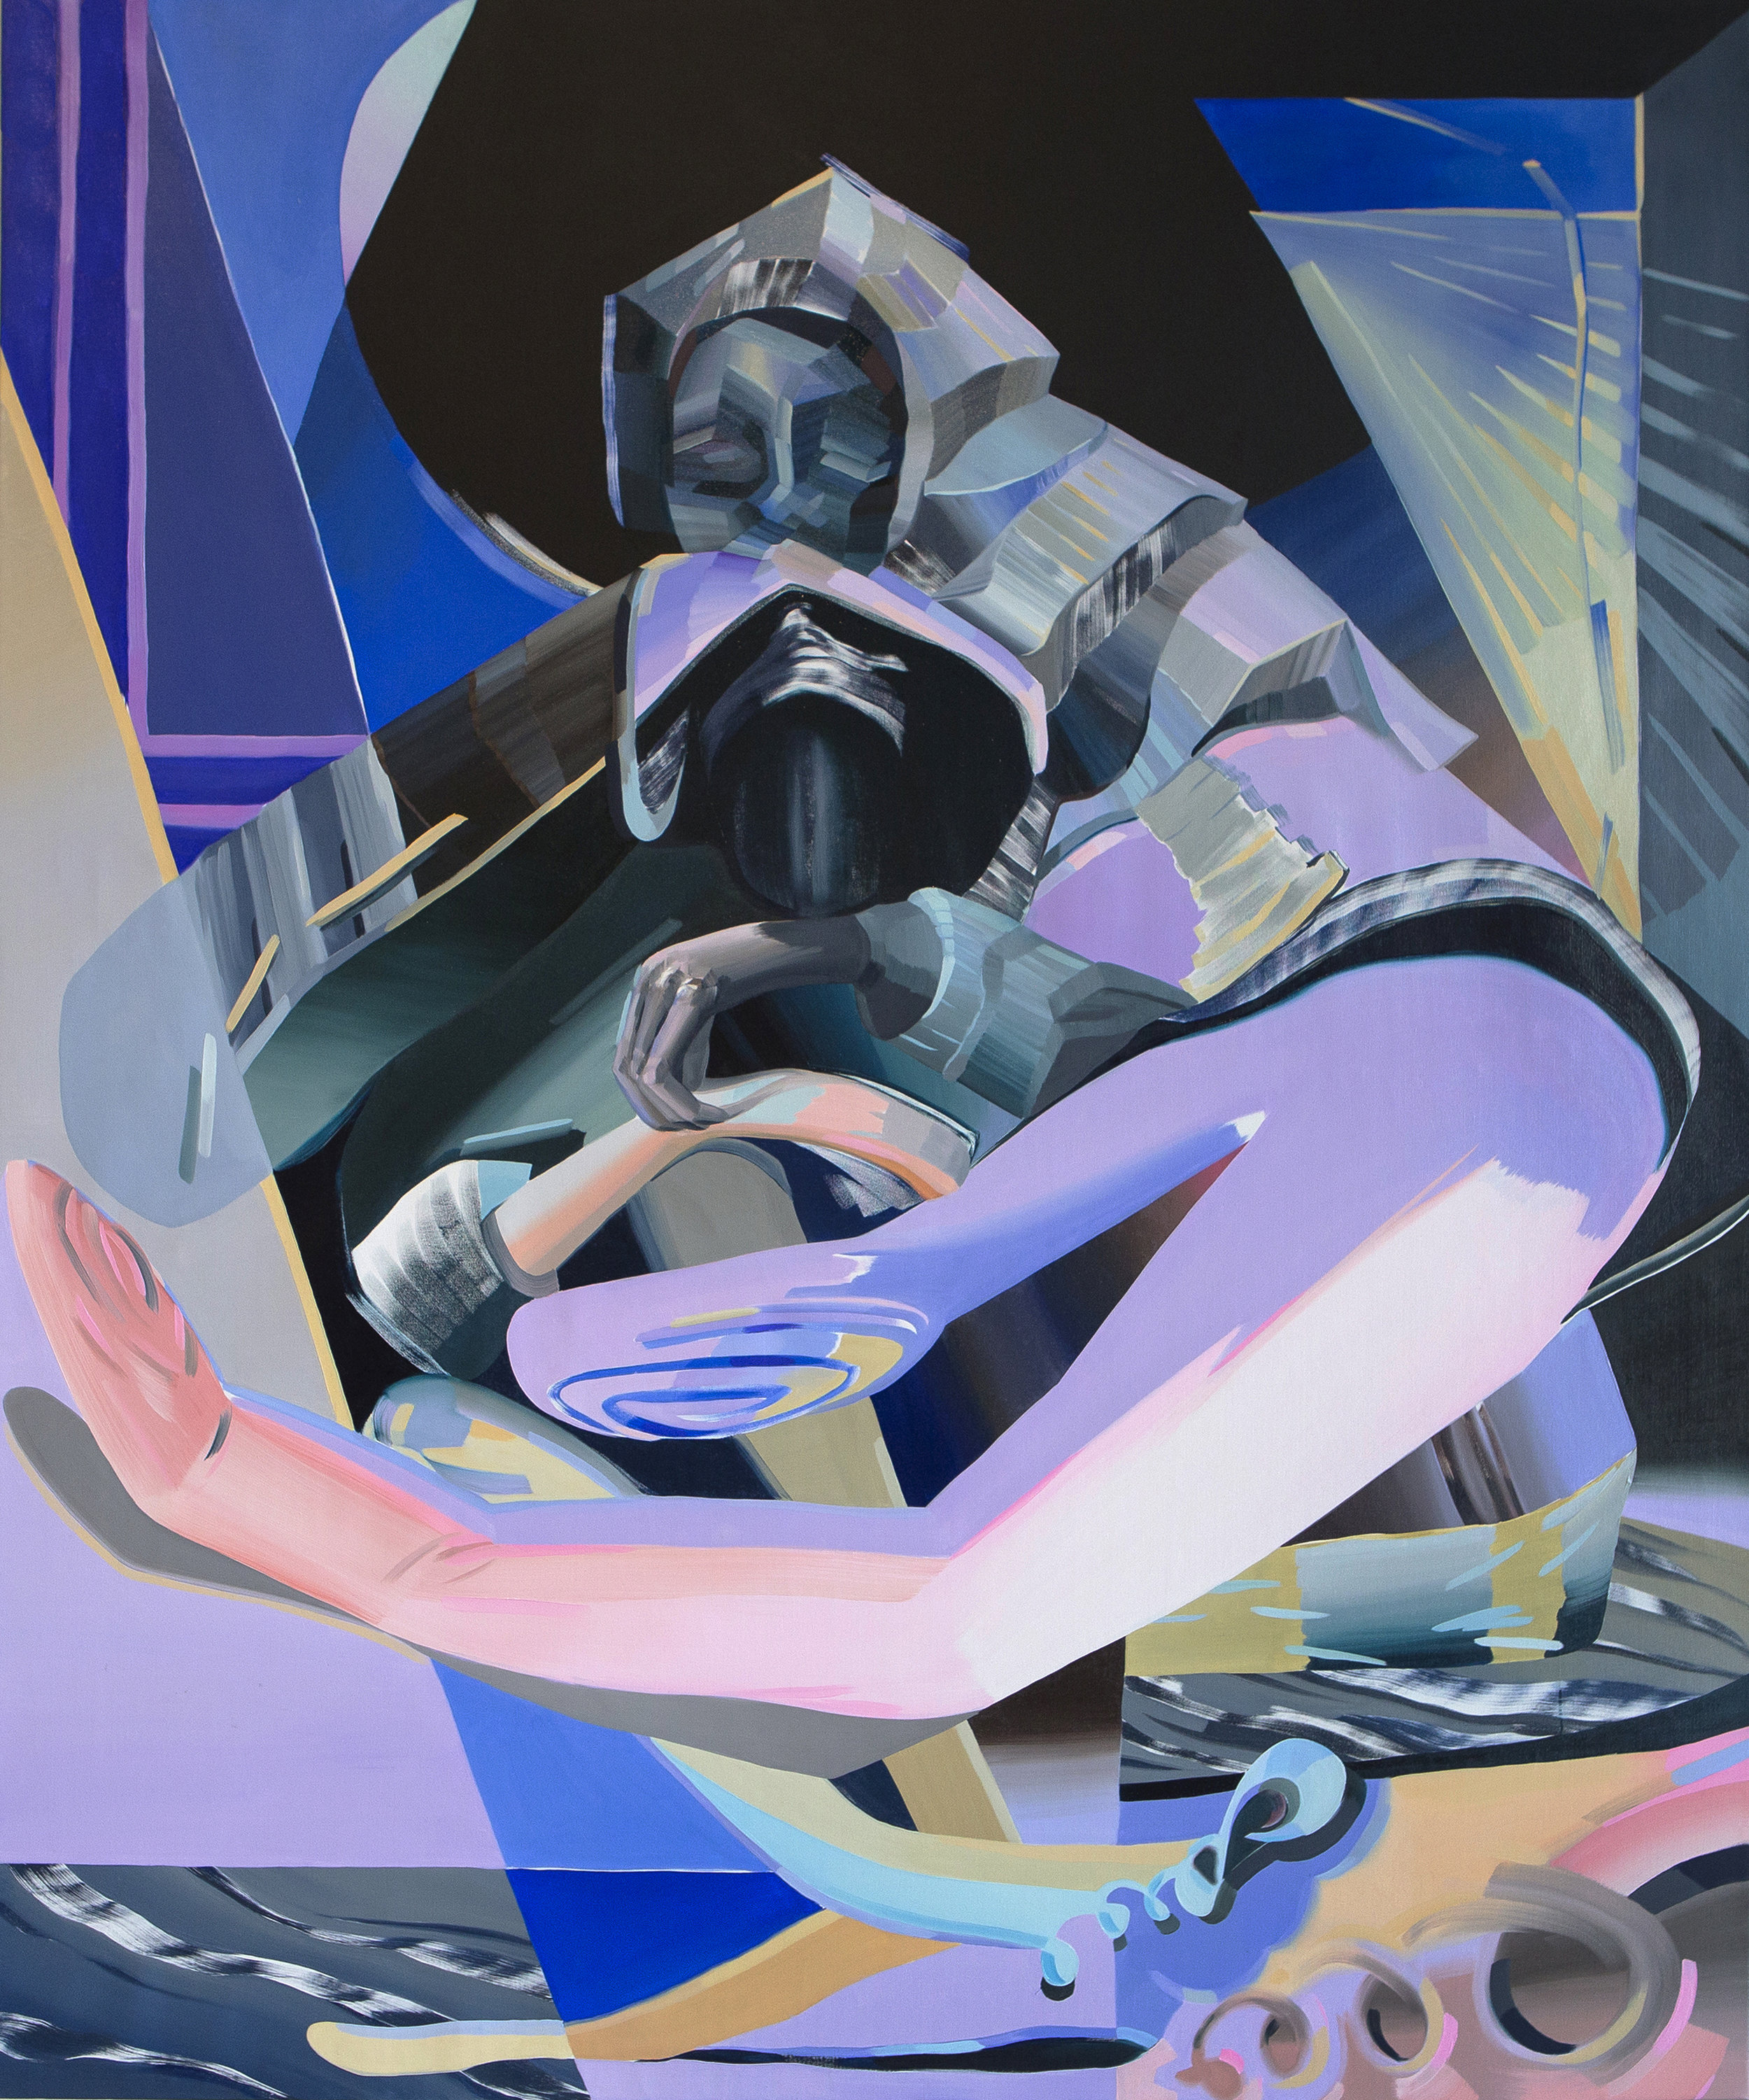 Mountain Mother (for Kollwitz), 2017, oil on canvas, 72 x 60 inches